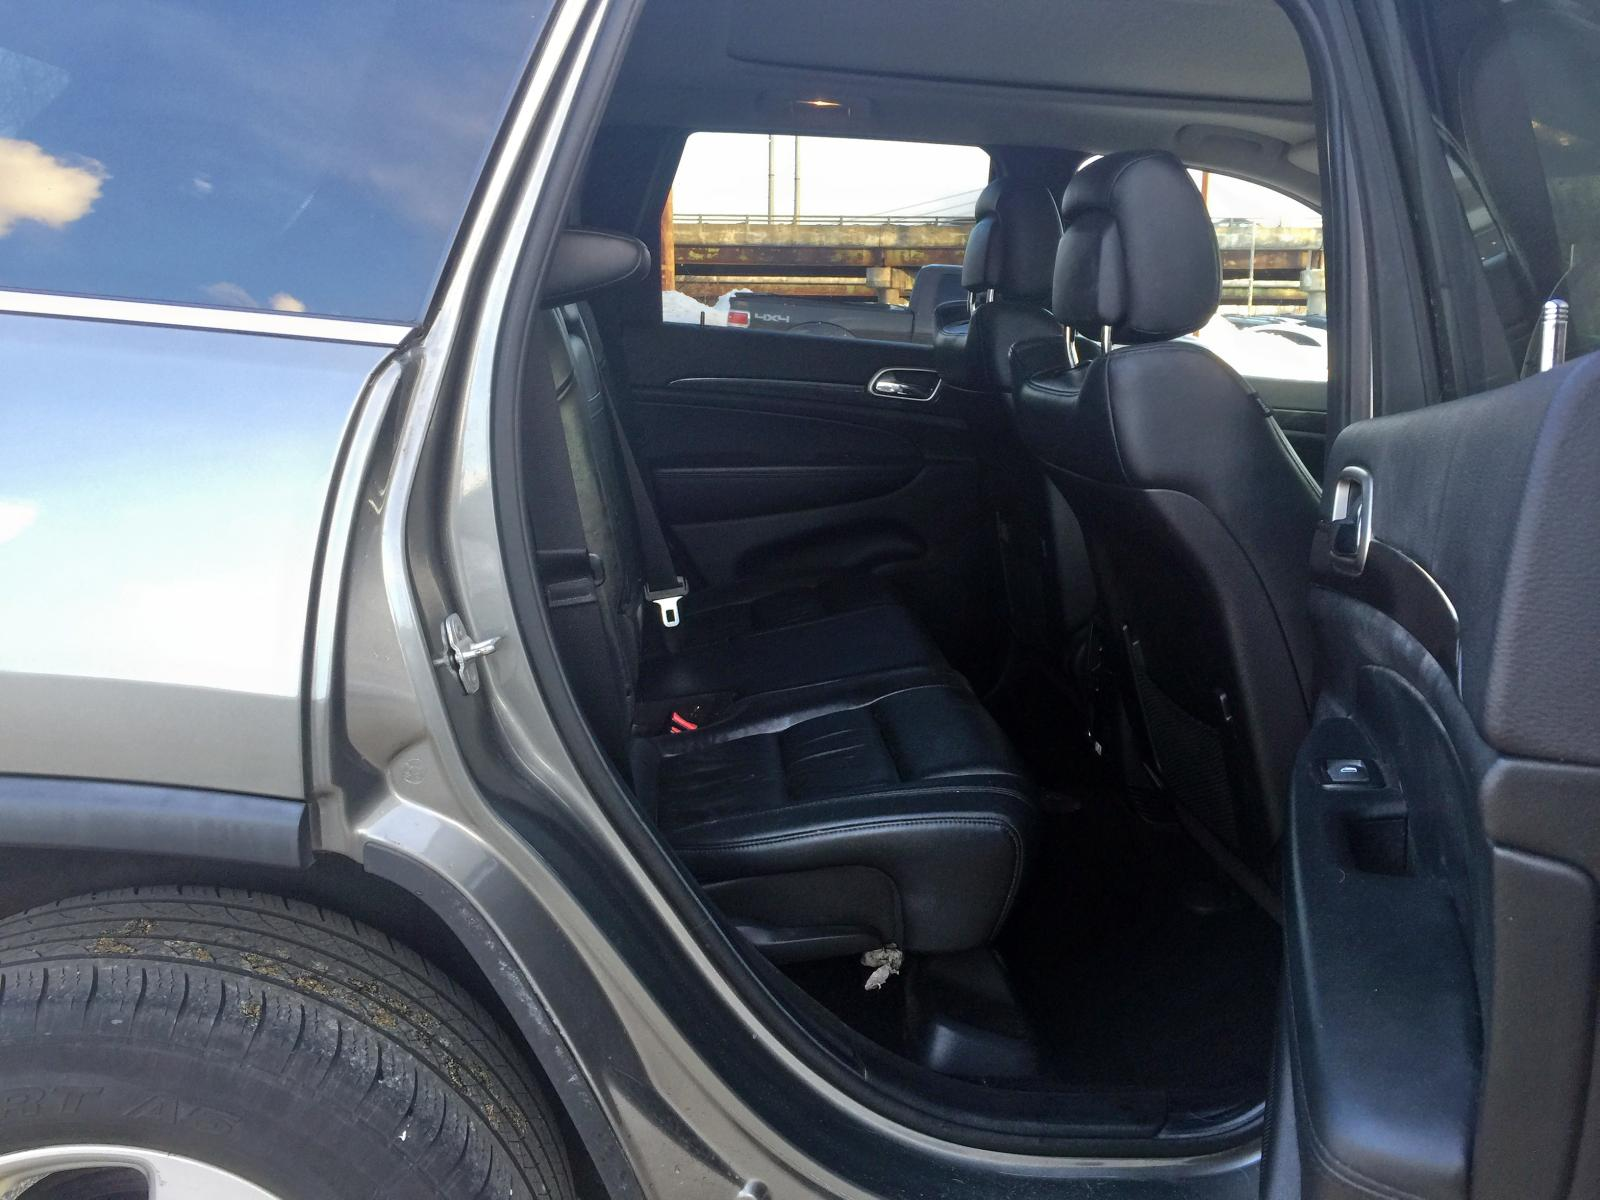 2012 Jeep Grand Cher 3.6L detail view